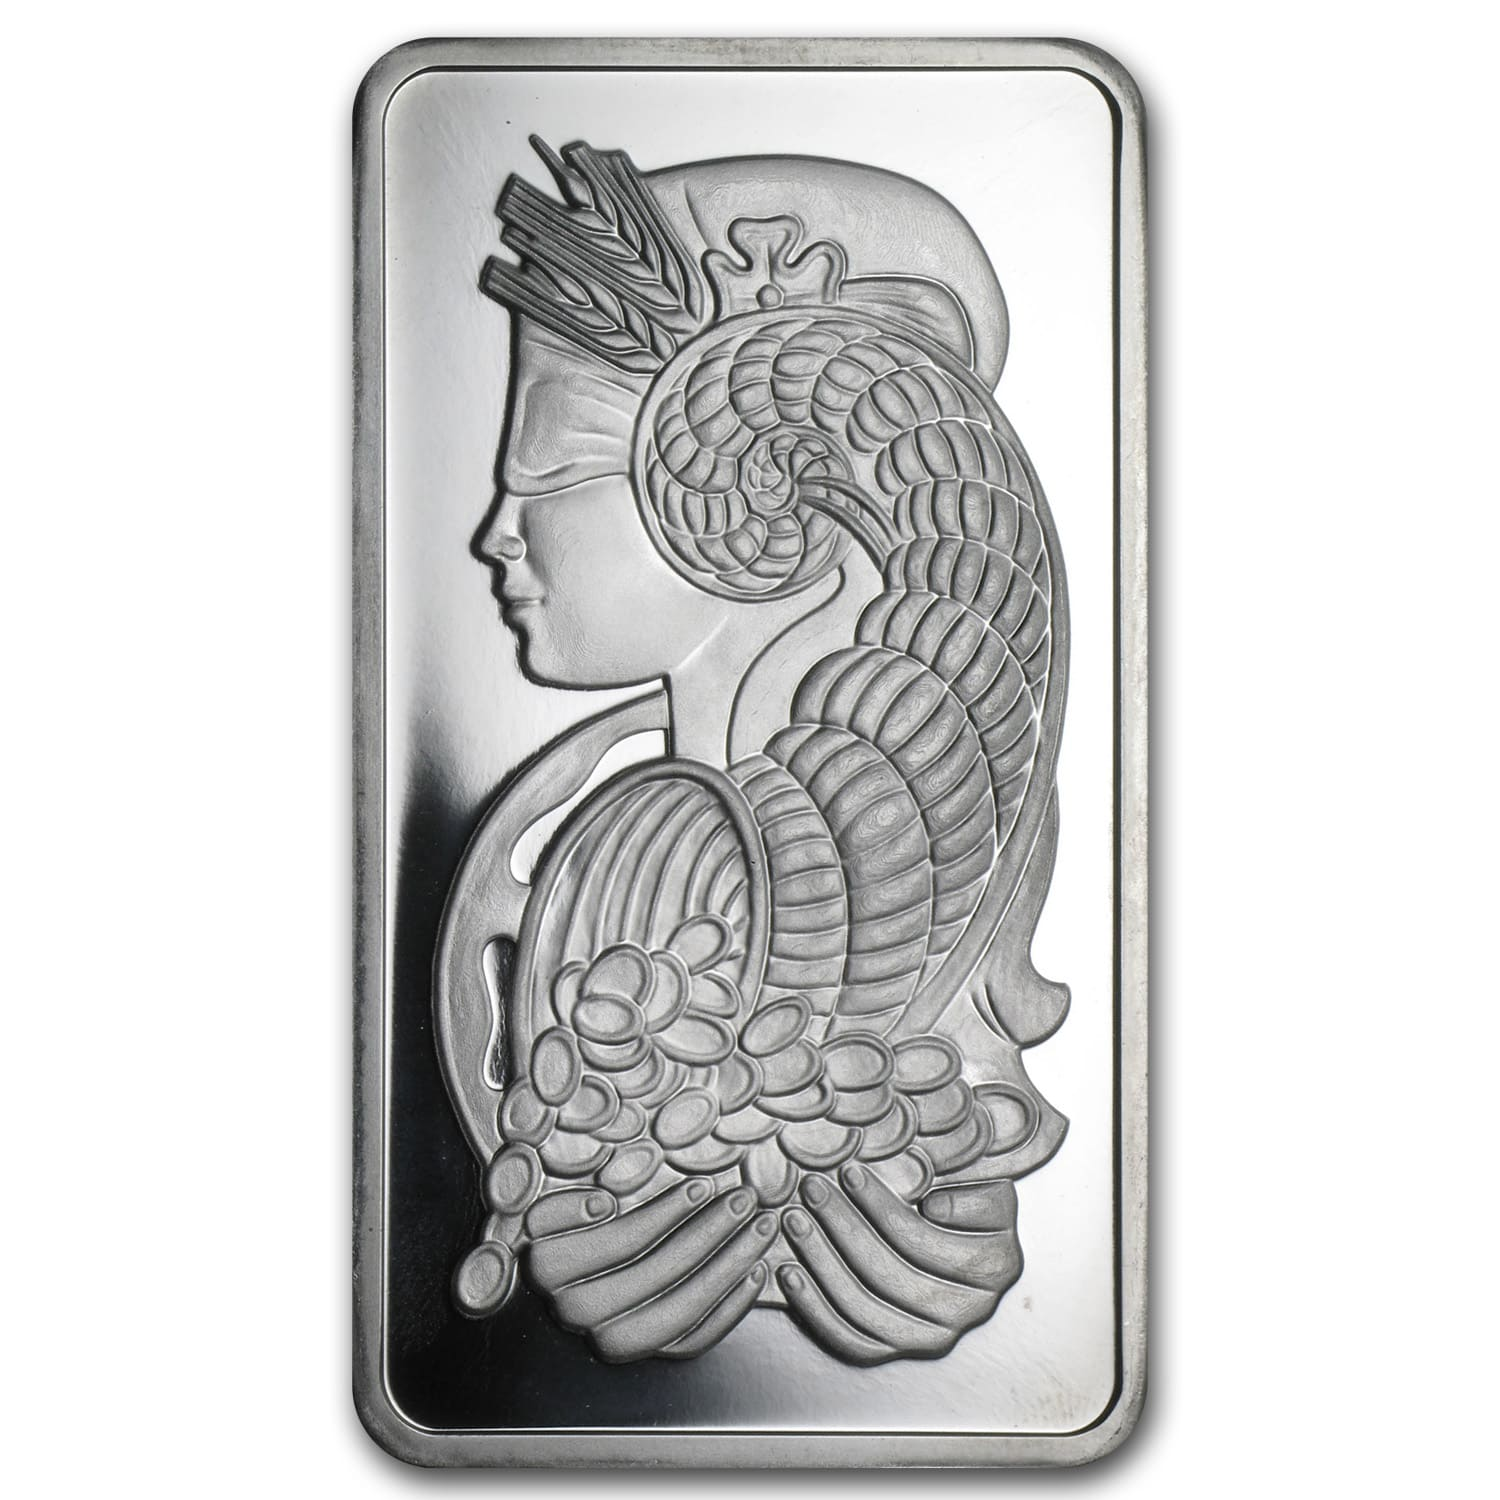 10 oz Platinum Bar - Pamp Suisse (In Assay)